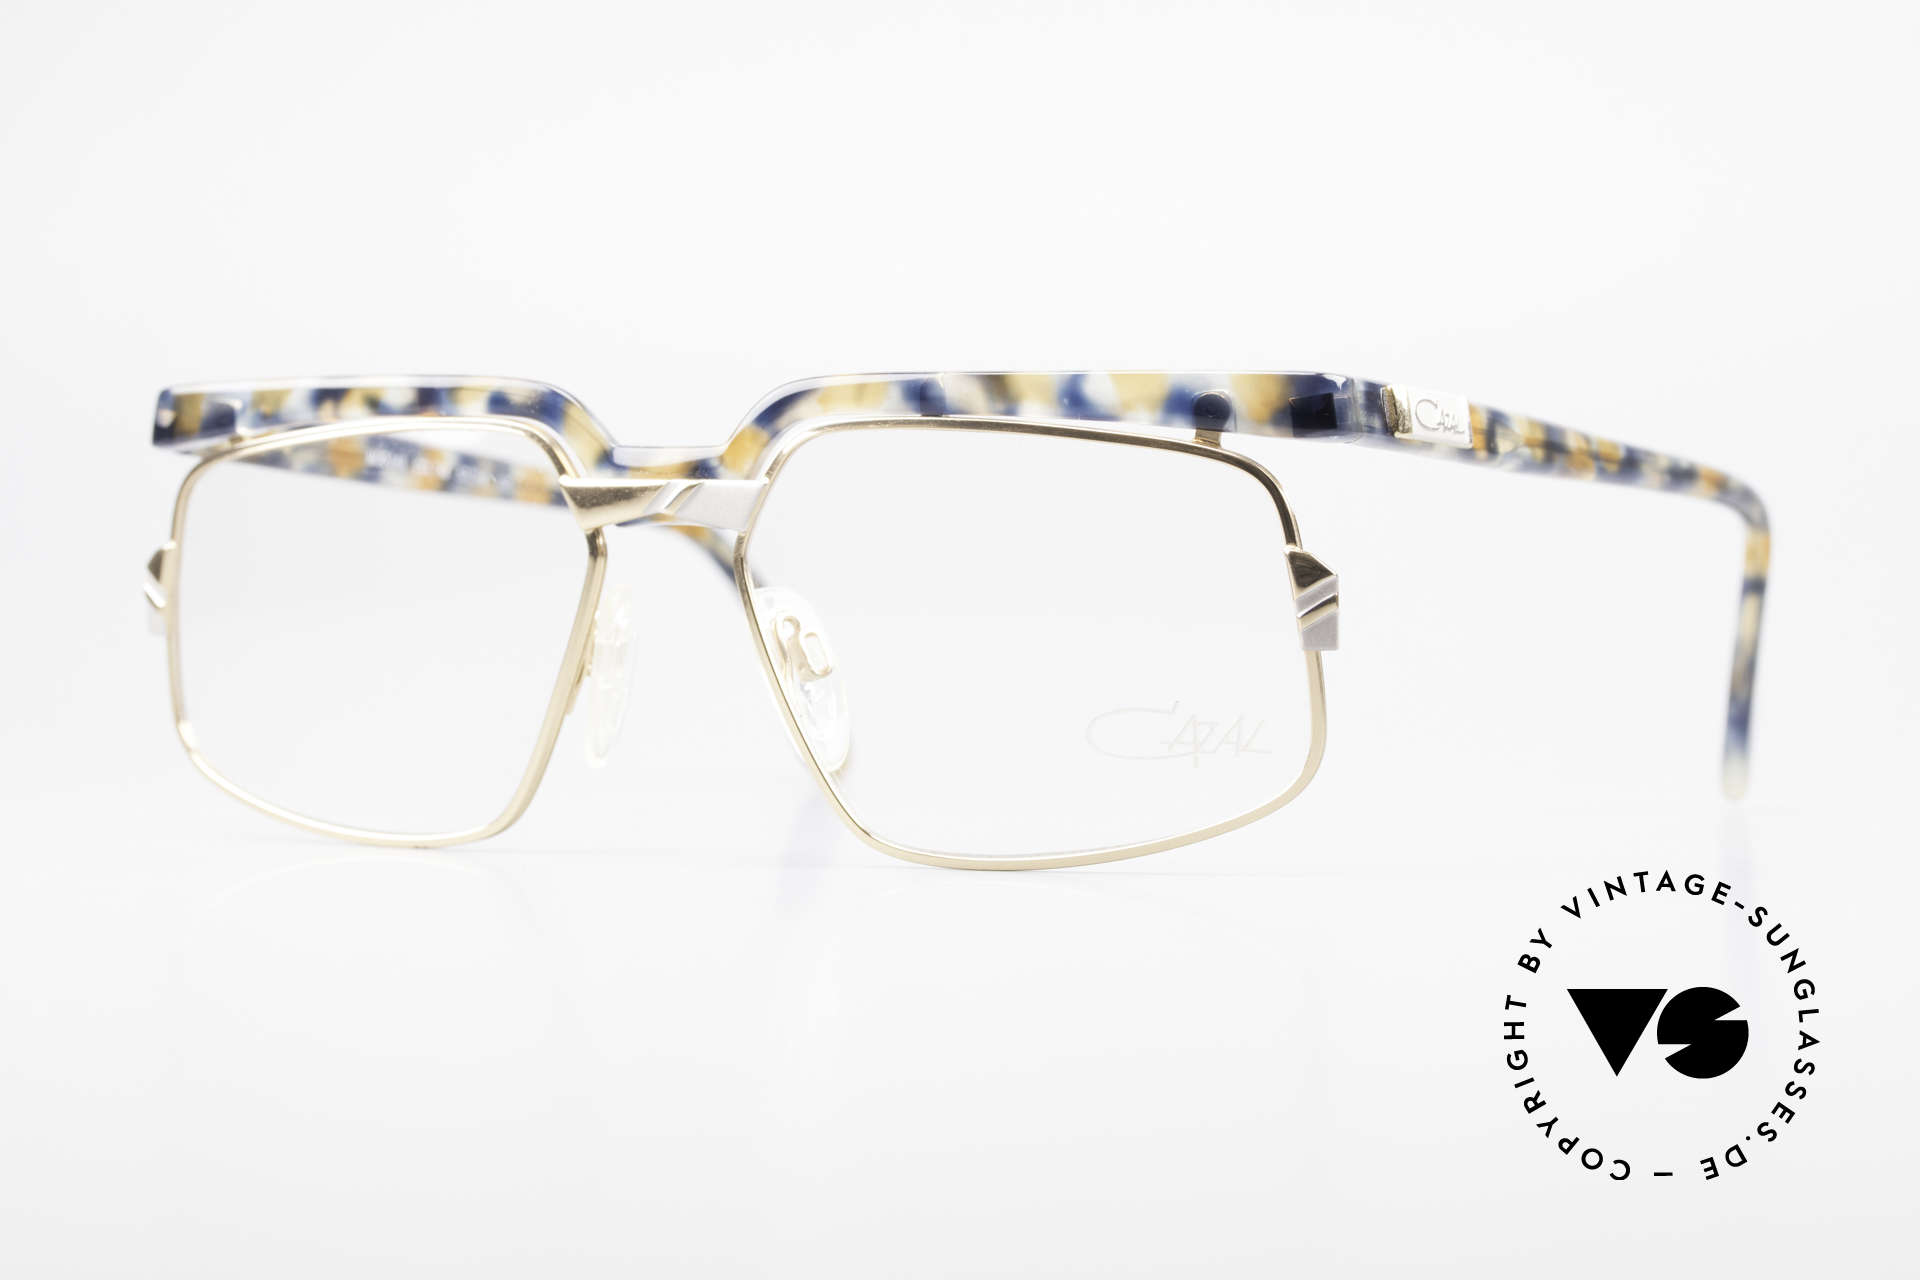 Cazal 246 Extraordinary Vintage Glasses, crazy vintage Cazal eyeglasses of the early 90's, Made for Men and Women